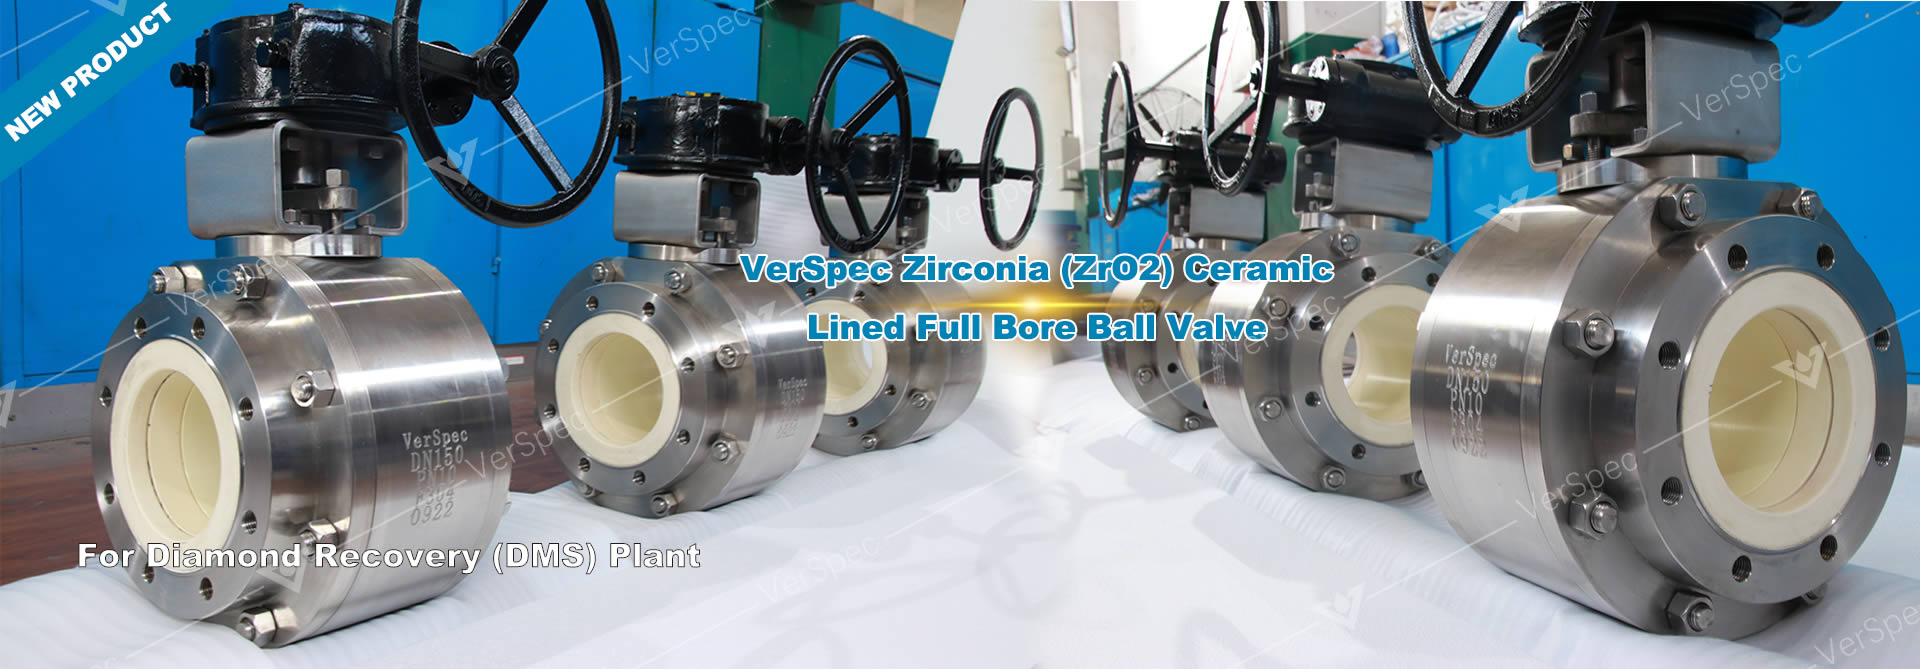 Verspec Moyan Series Short Pattern Ceramic Ball Valve